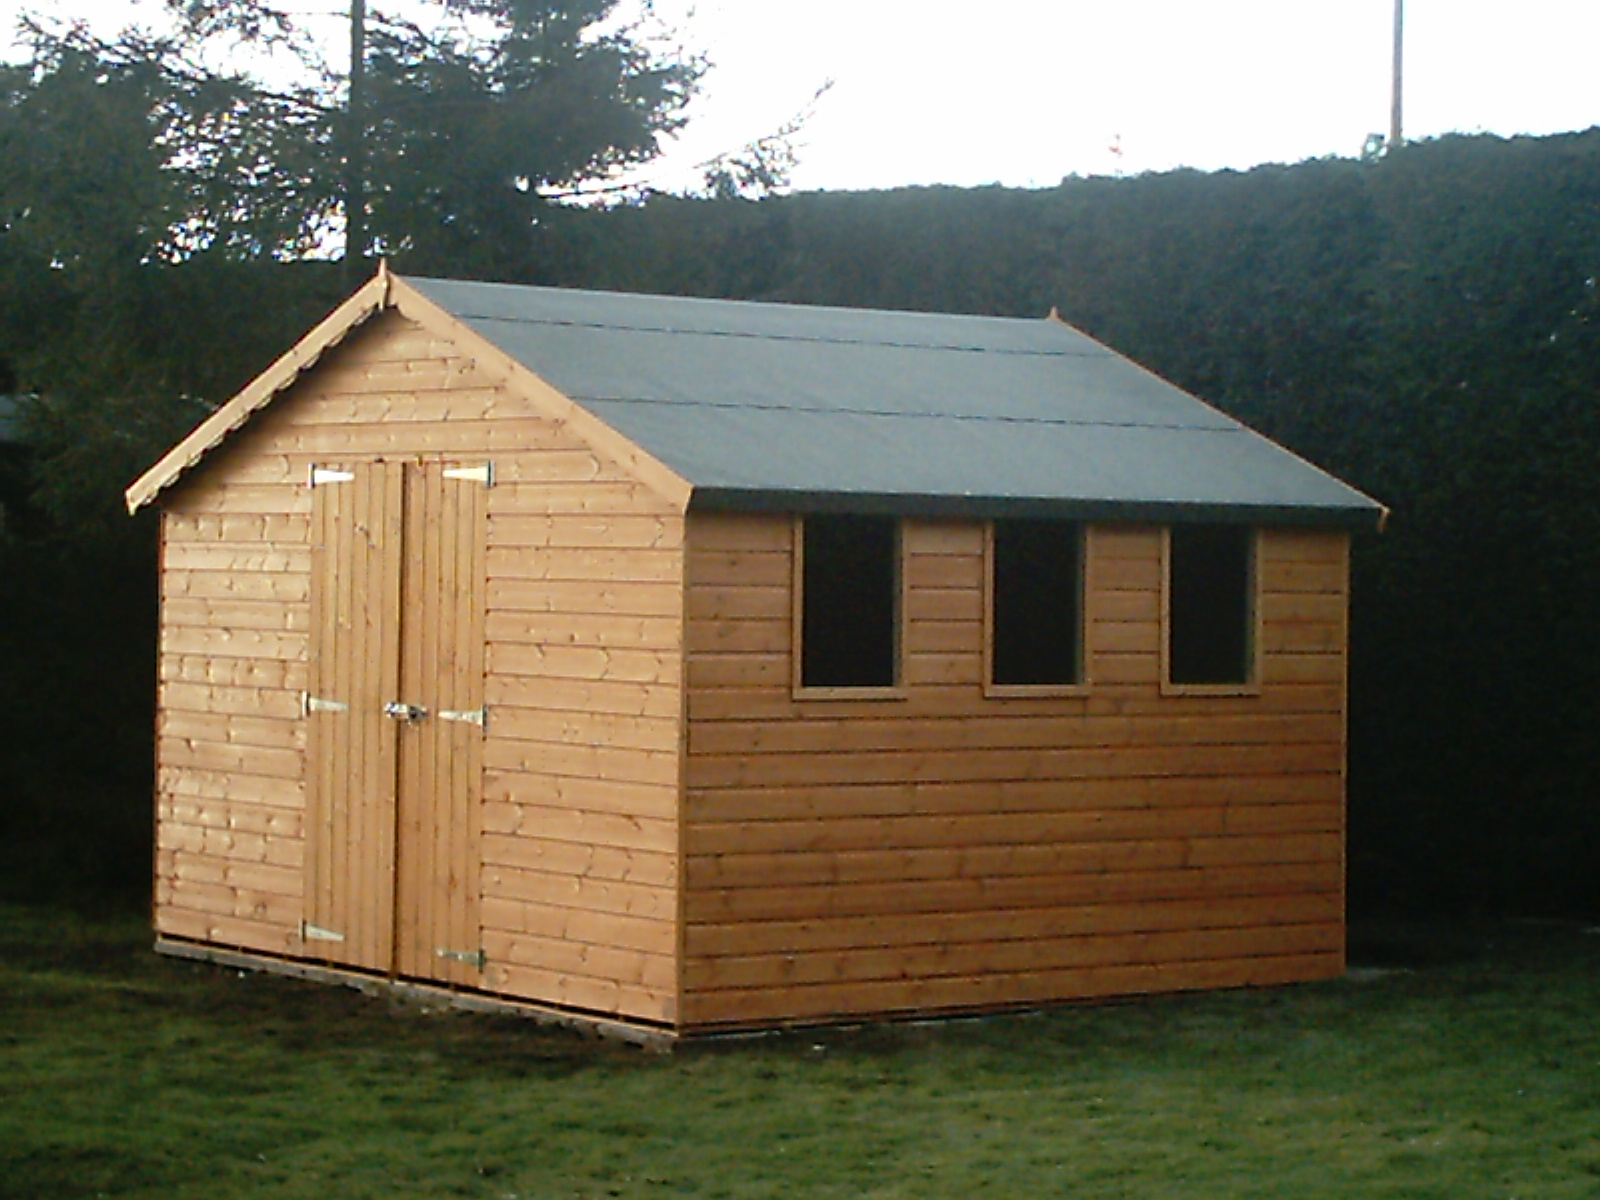 Apex shed and pent shed image gallery from shed king for Sheds and barns